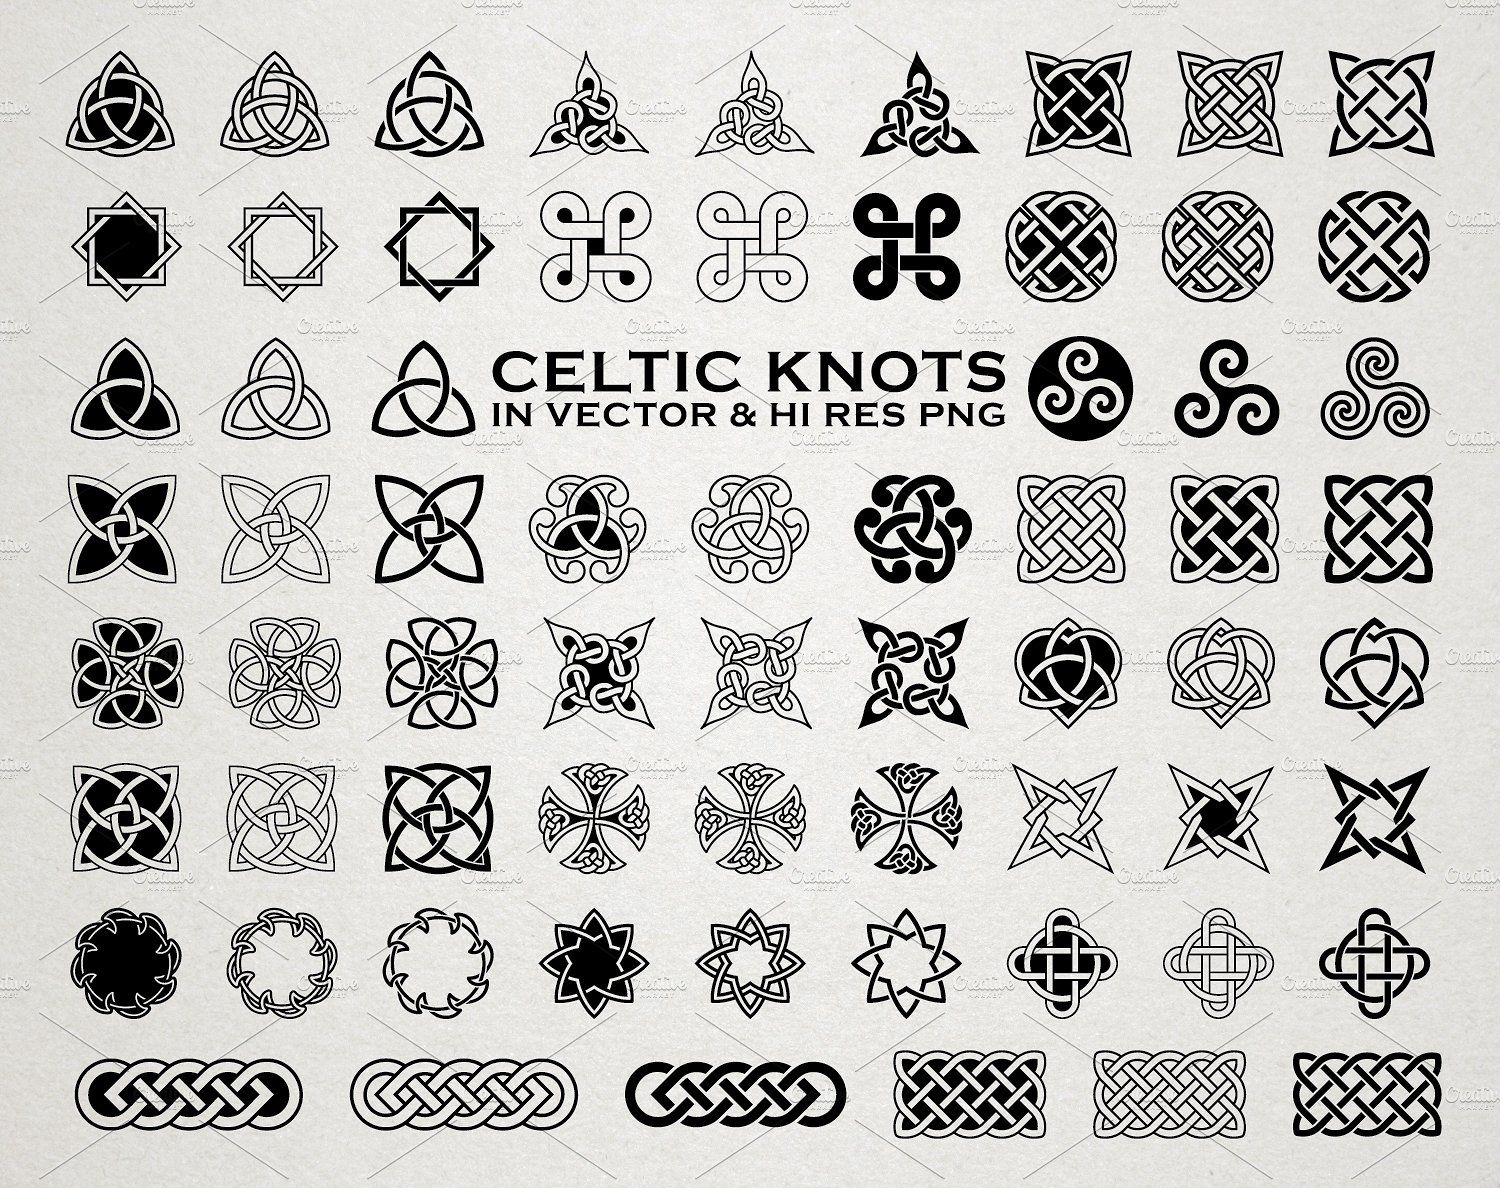 Download Celtic Knots & Ornaments Vector Pack by Seaquint on ...